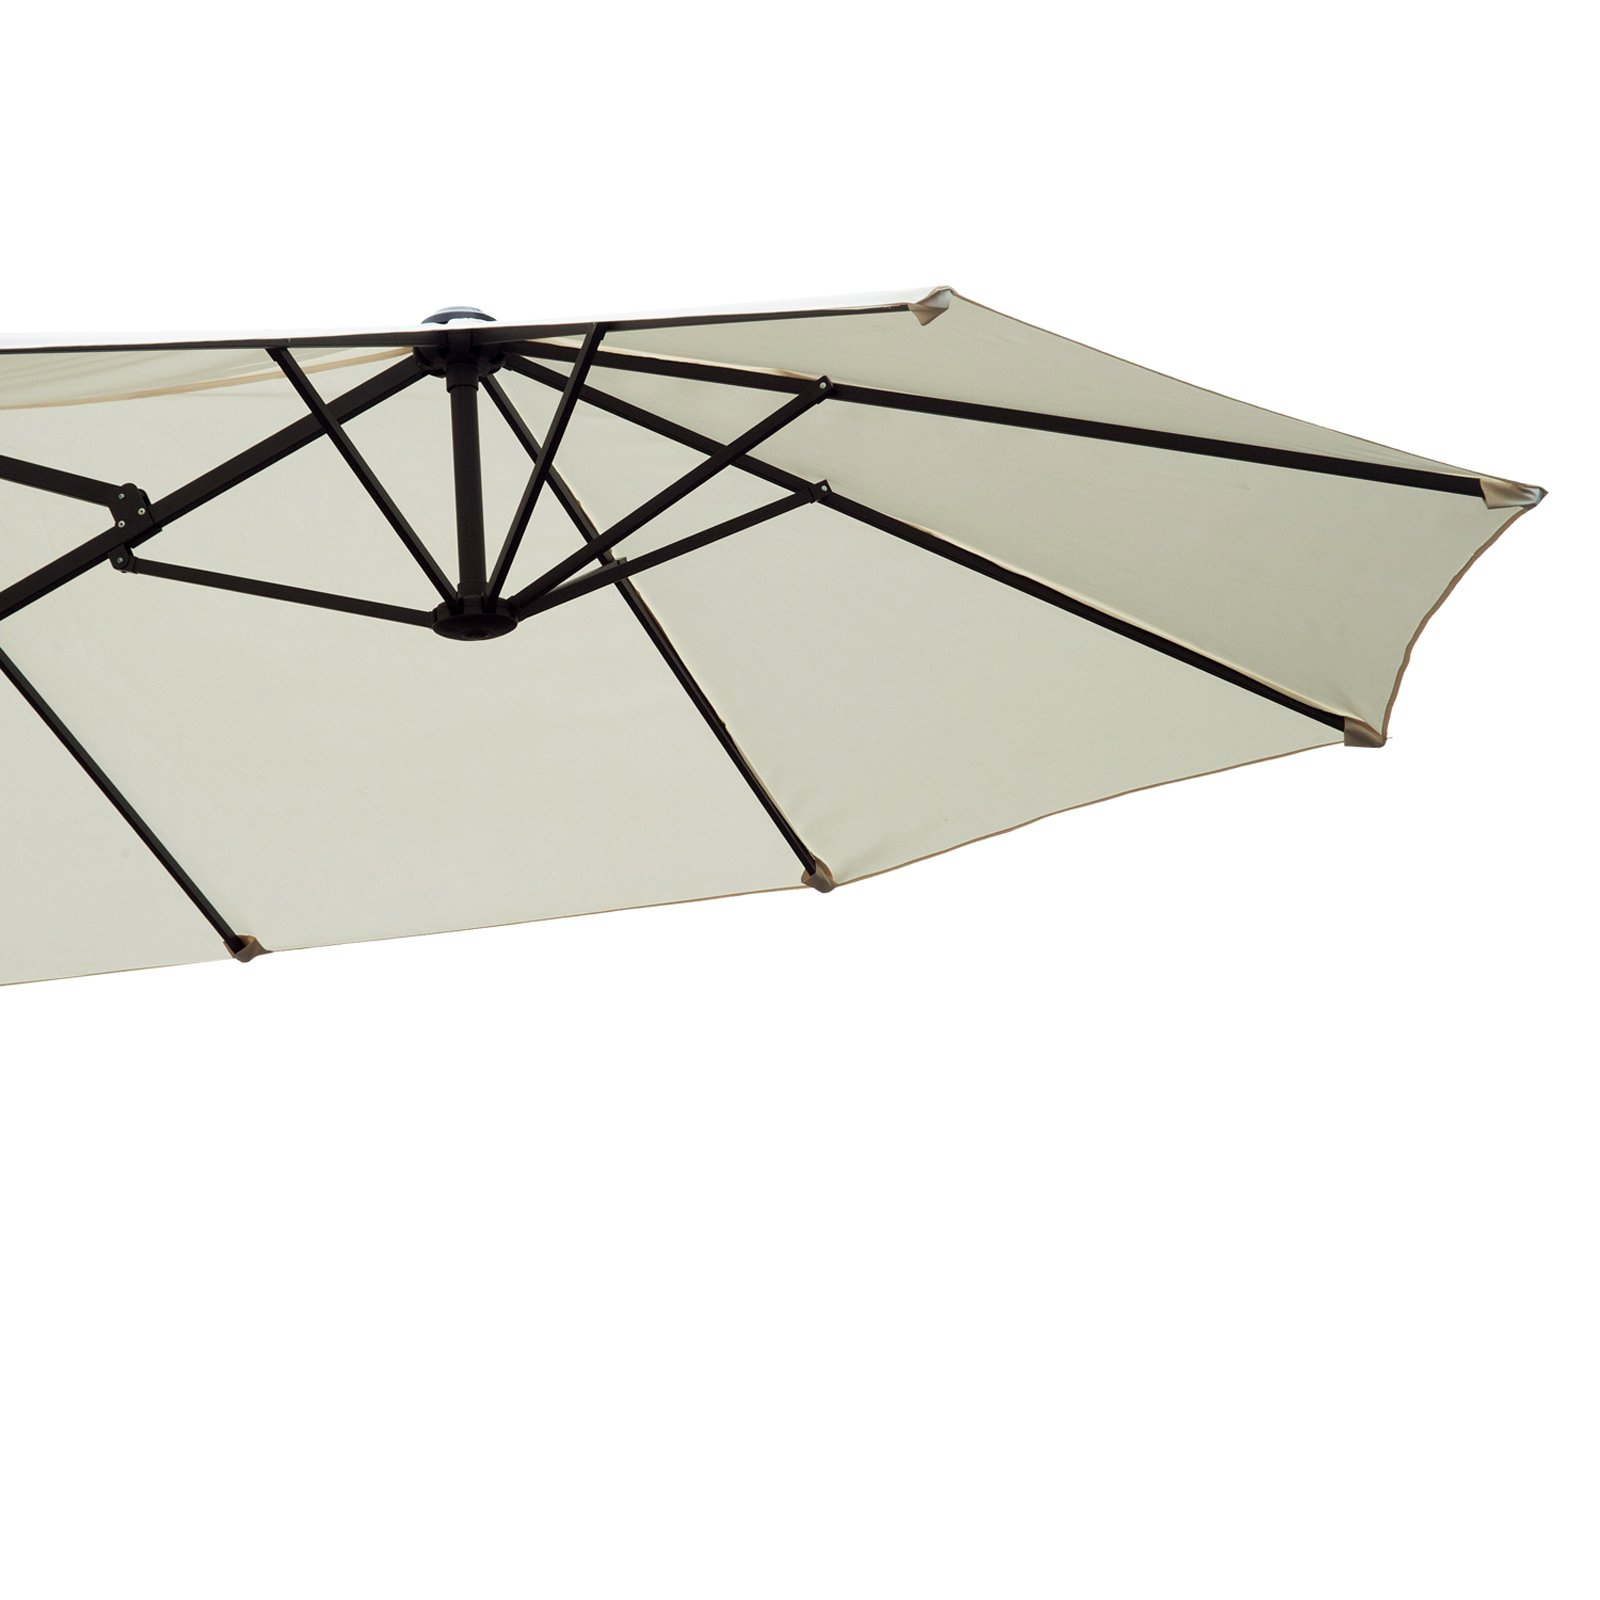 Lagasse Market Umbrellas Inside Recent Outsunny 15 Ft. Steel Double Sided Patio Umbrella (Gallery 12 of 20)